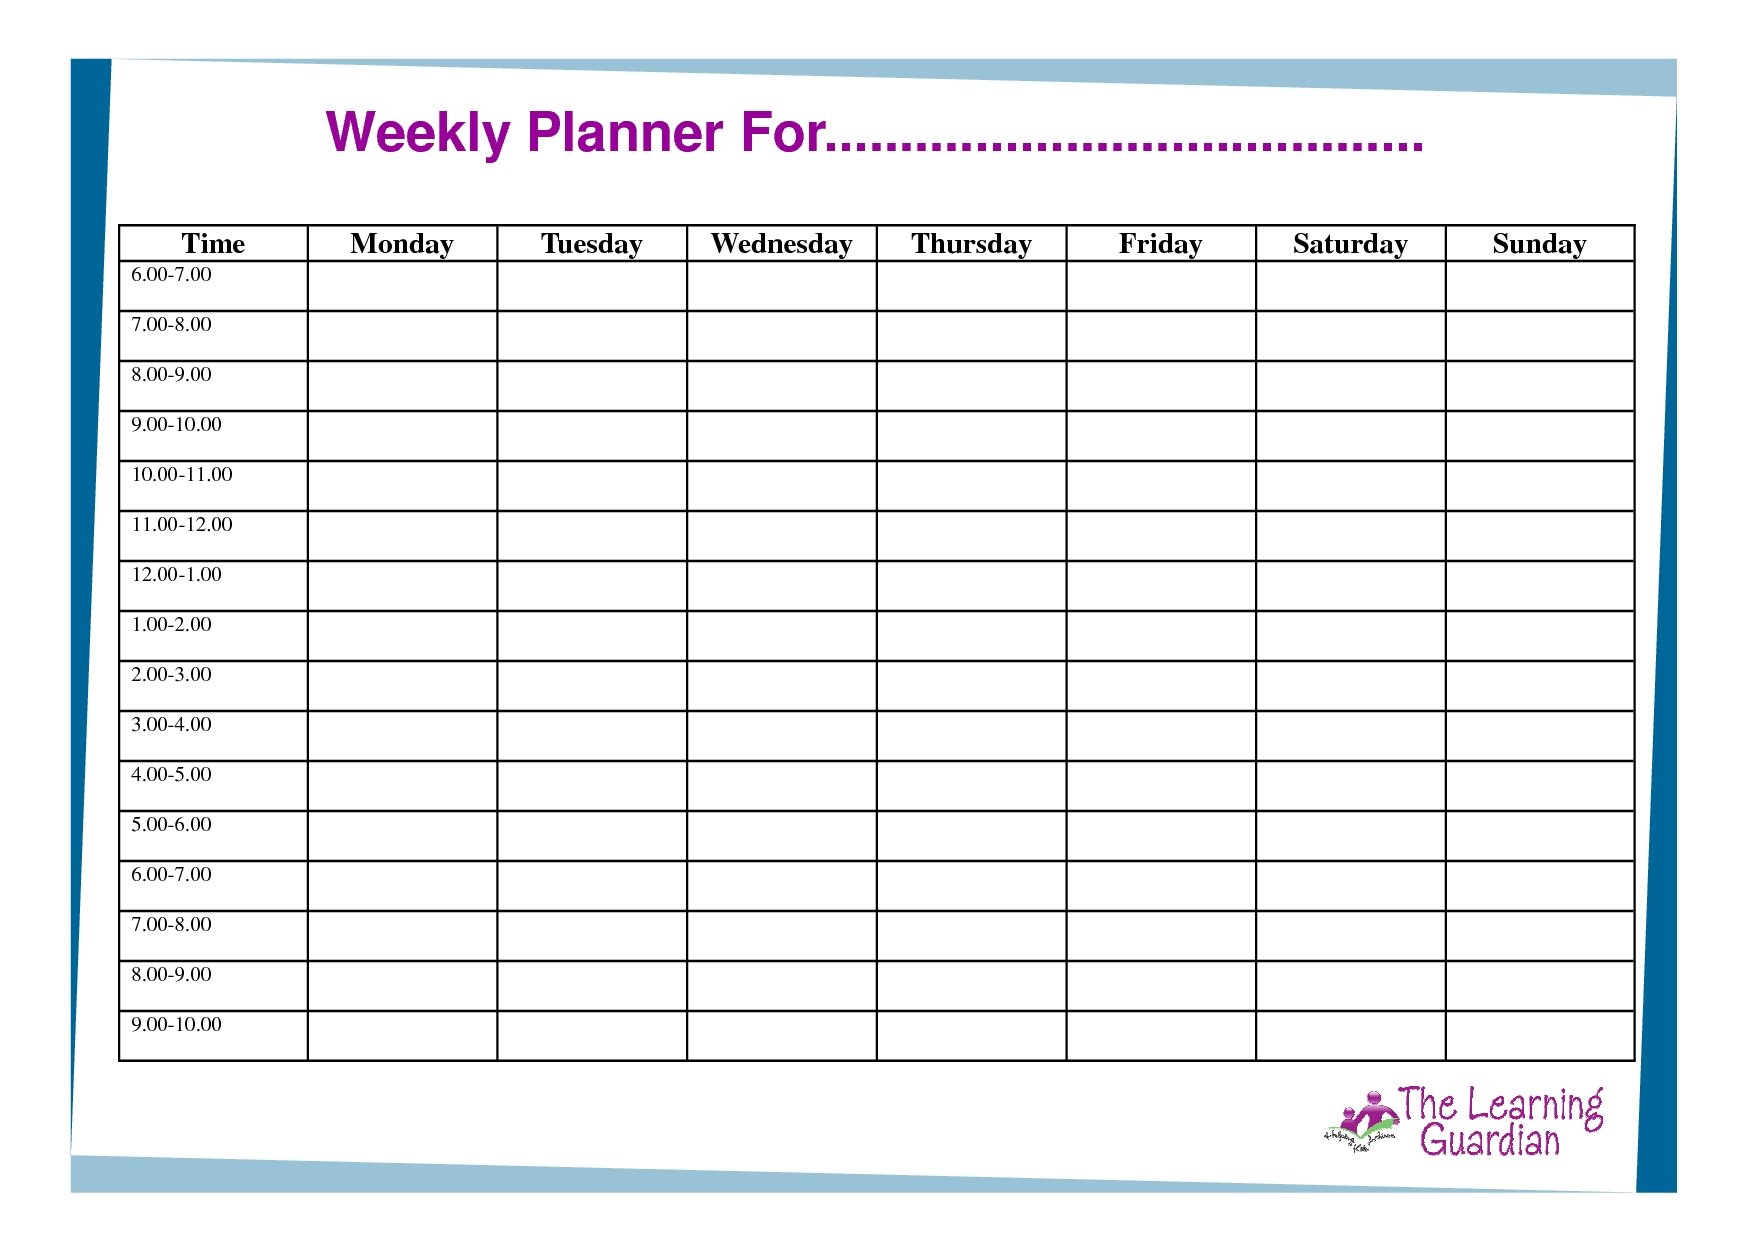 Free Printable Weekly Calendar Templates | Weekly Planner For Time intended for Monday To Friday Planner Template